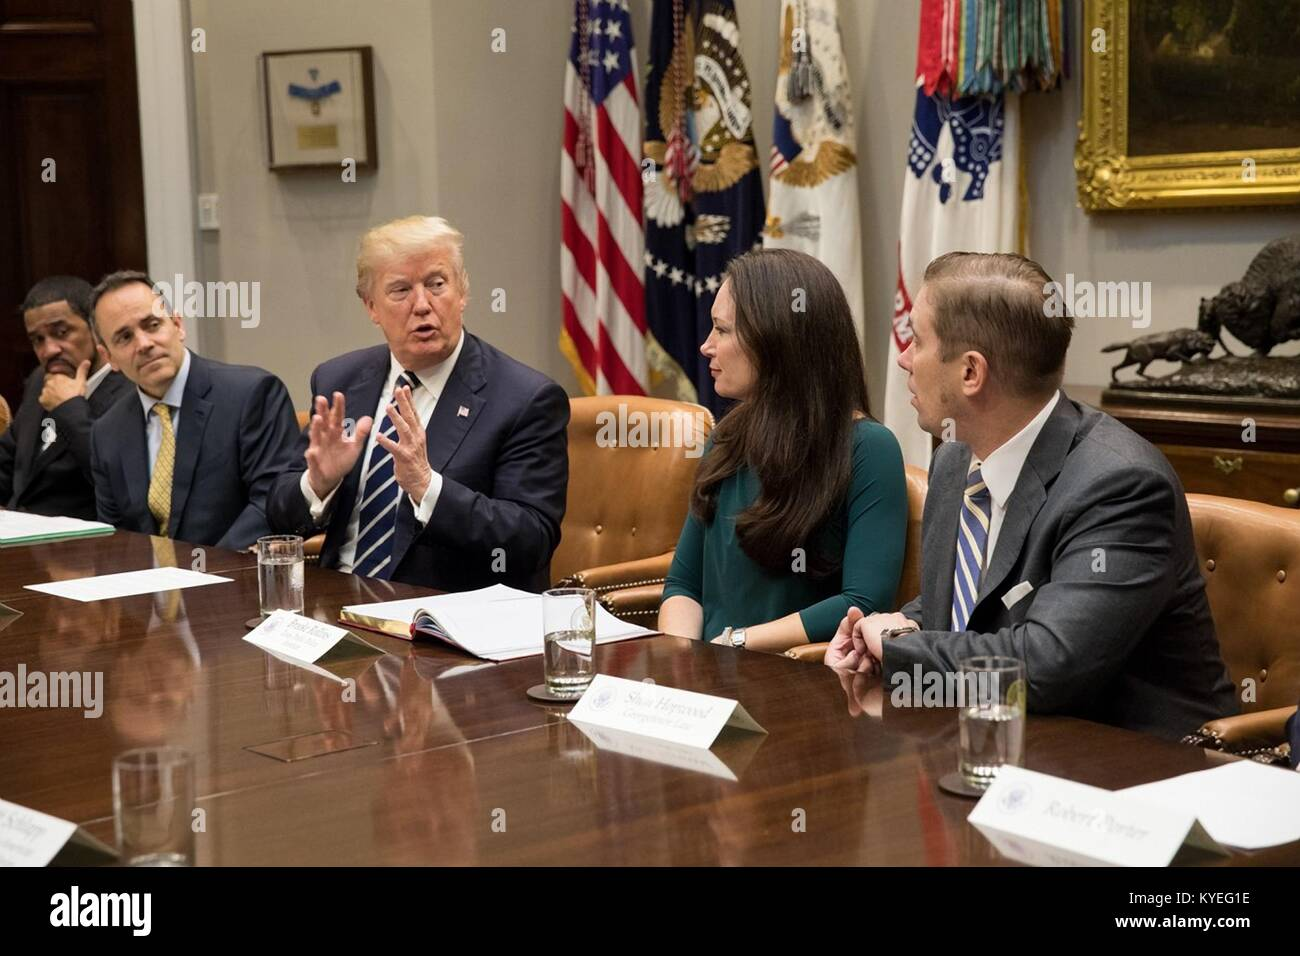 Trump Round Table.U S President Donald Trump Speaks During A Prison Reform Roundtable